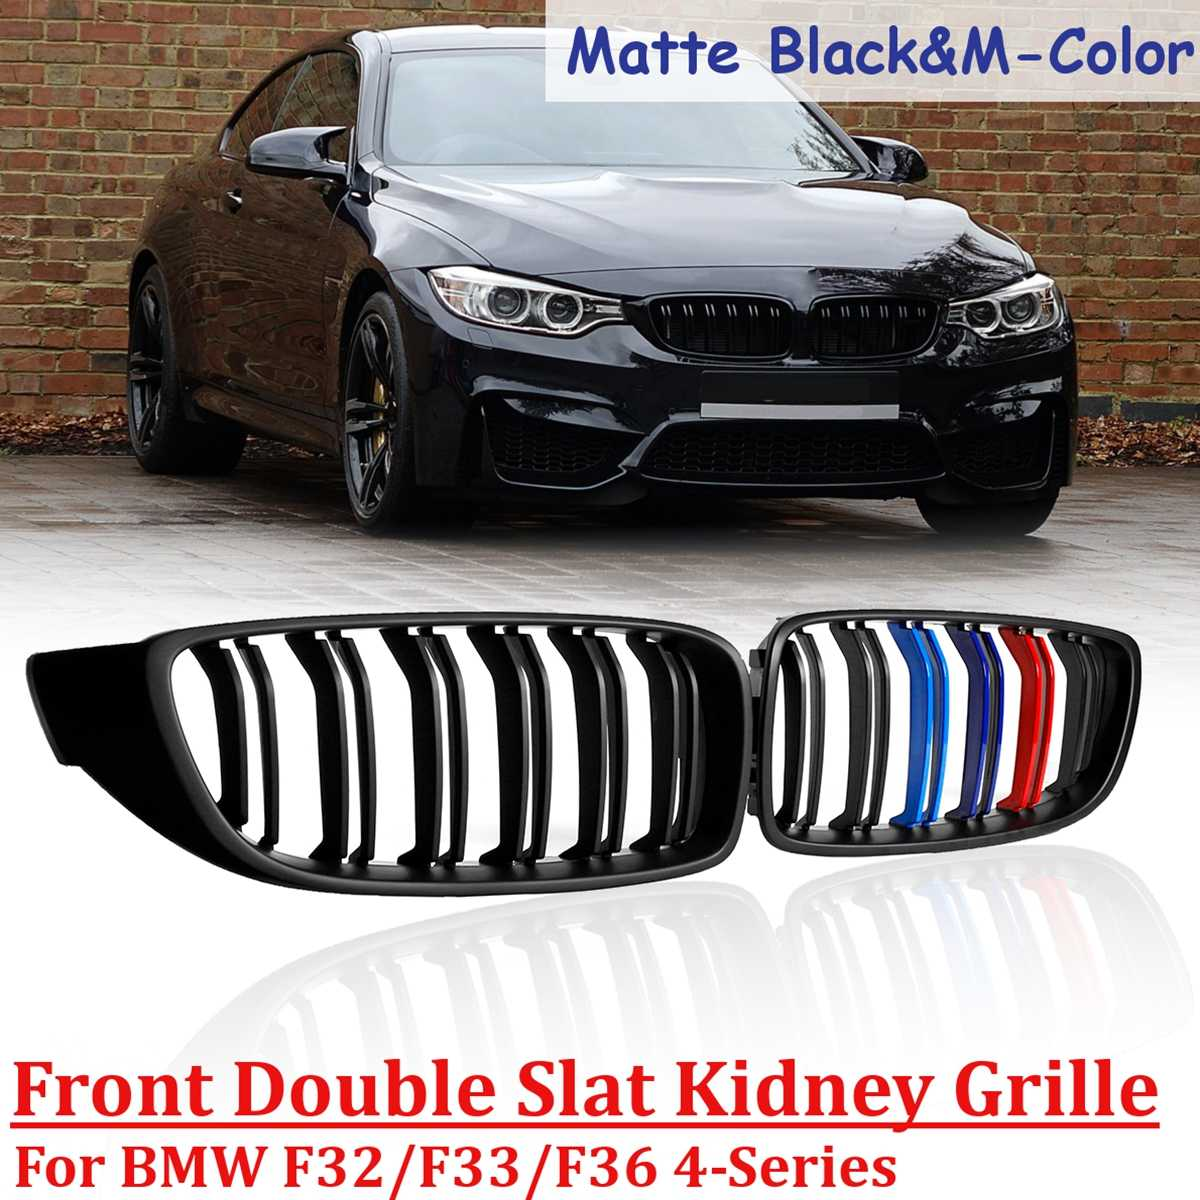 1 Pair Gloss Black-M color Matte Black Front Kidney Grille Double Slat M4 Sport Style Grill for BMW F82 F80 F32 F36 2013 -2016